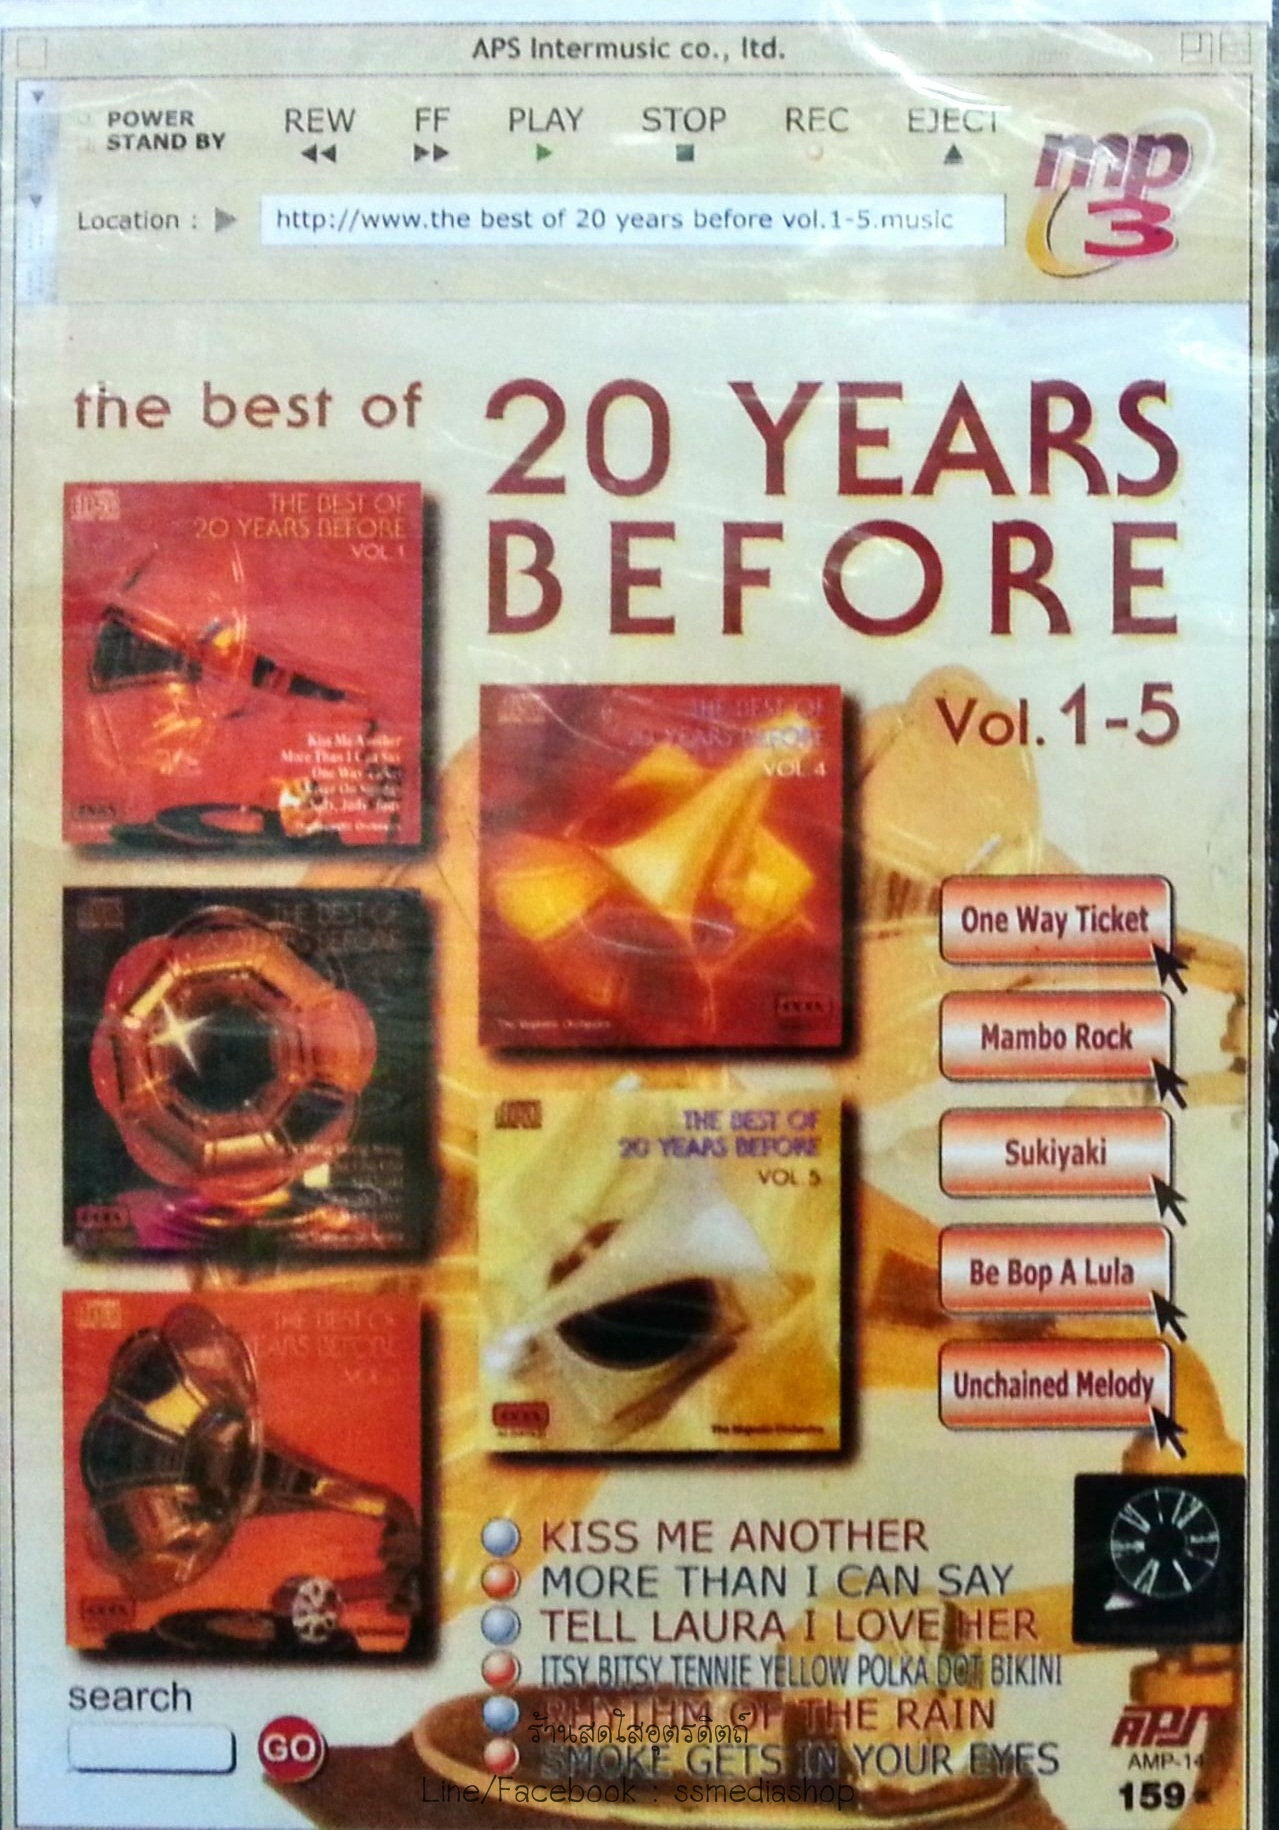 MP3 The best of 20 years before vol.1-5